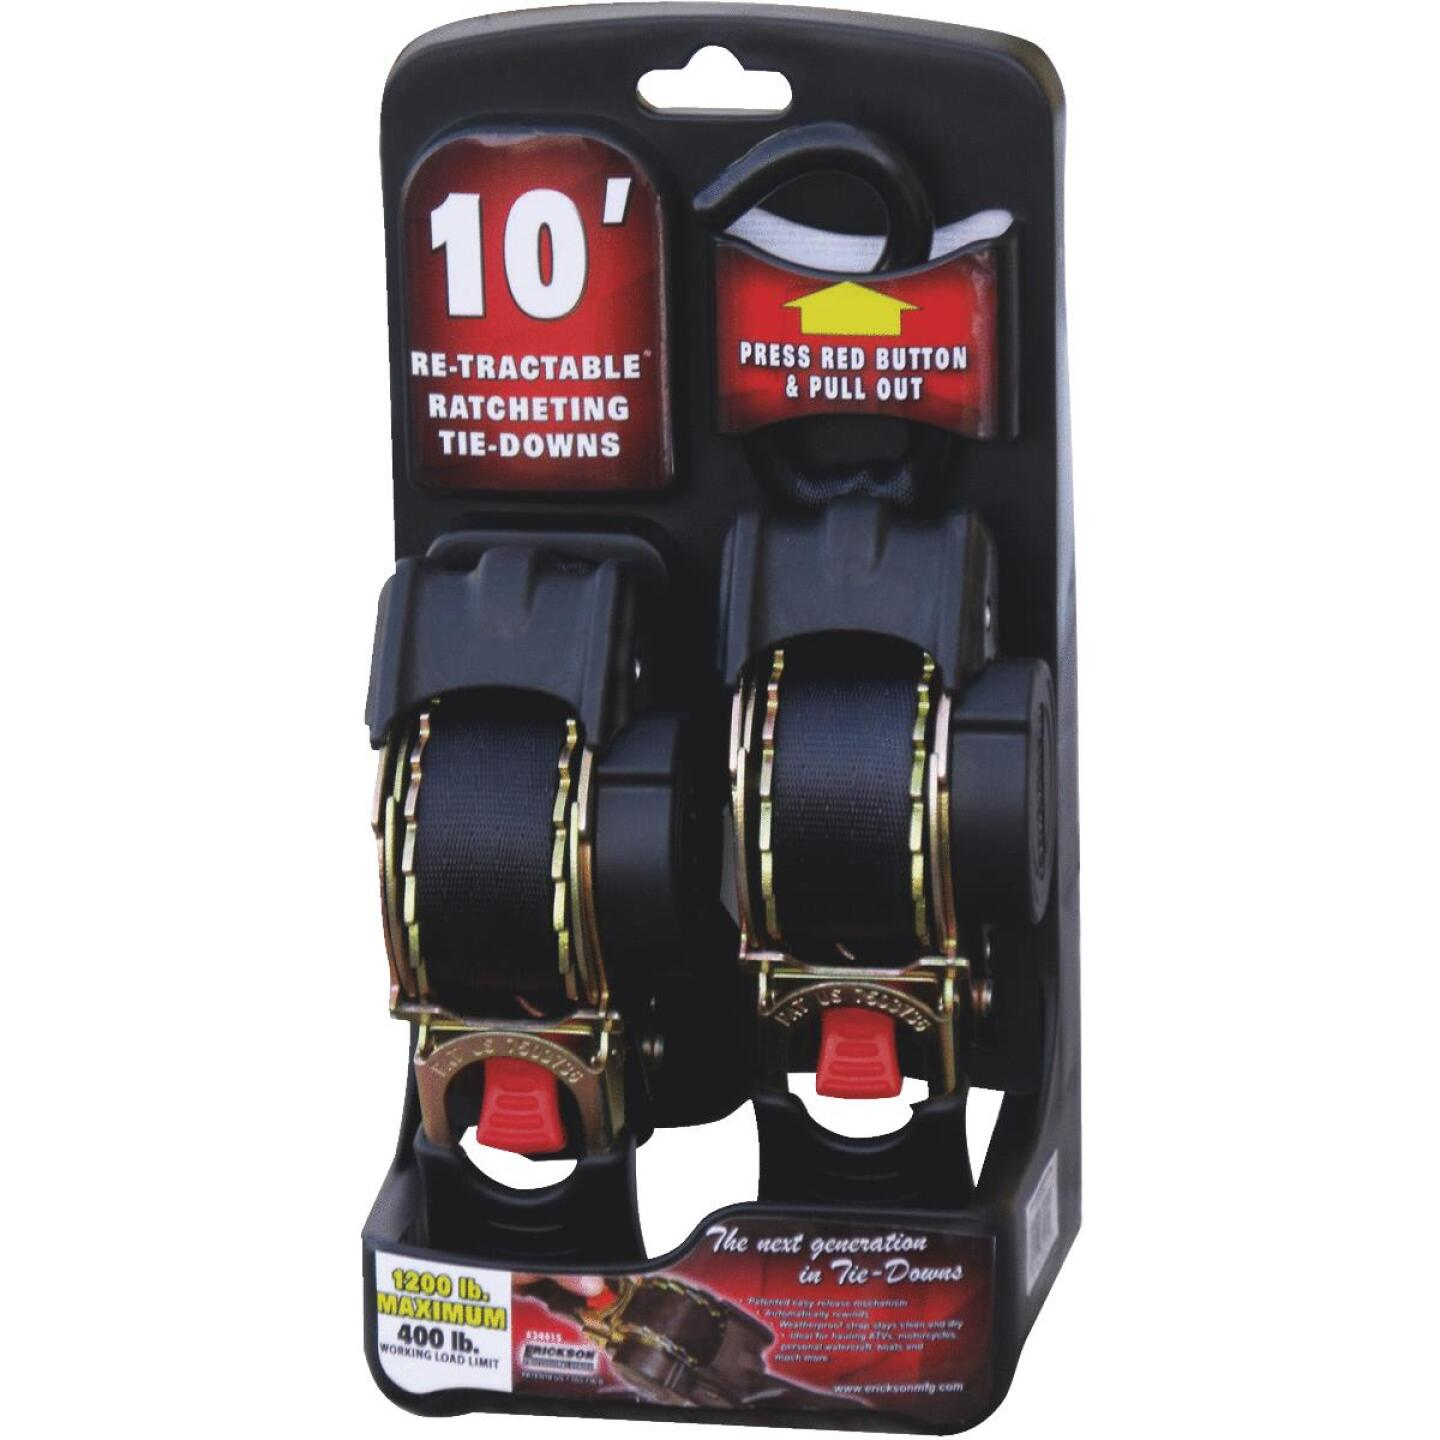 Erickson 1 In. x 10 Ft. 1200 Lb. Retractable Ratchet Strap (2-Pack) Image 2